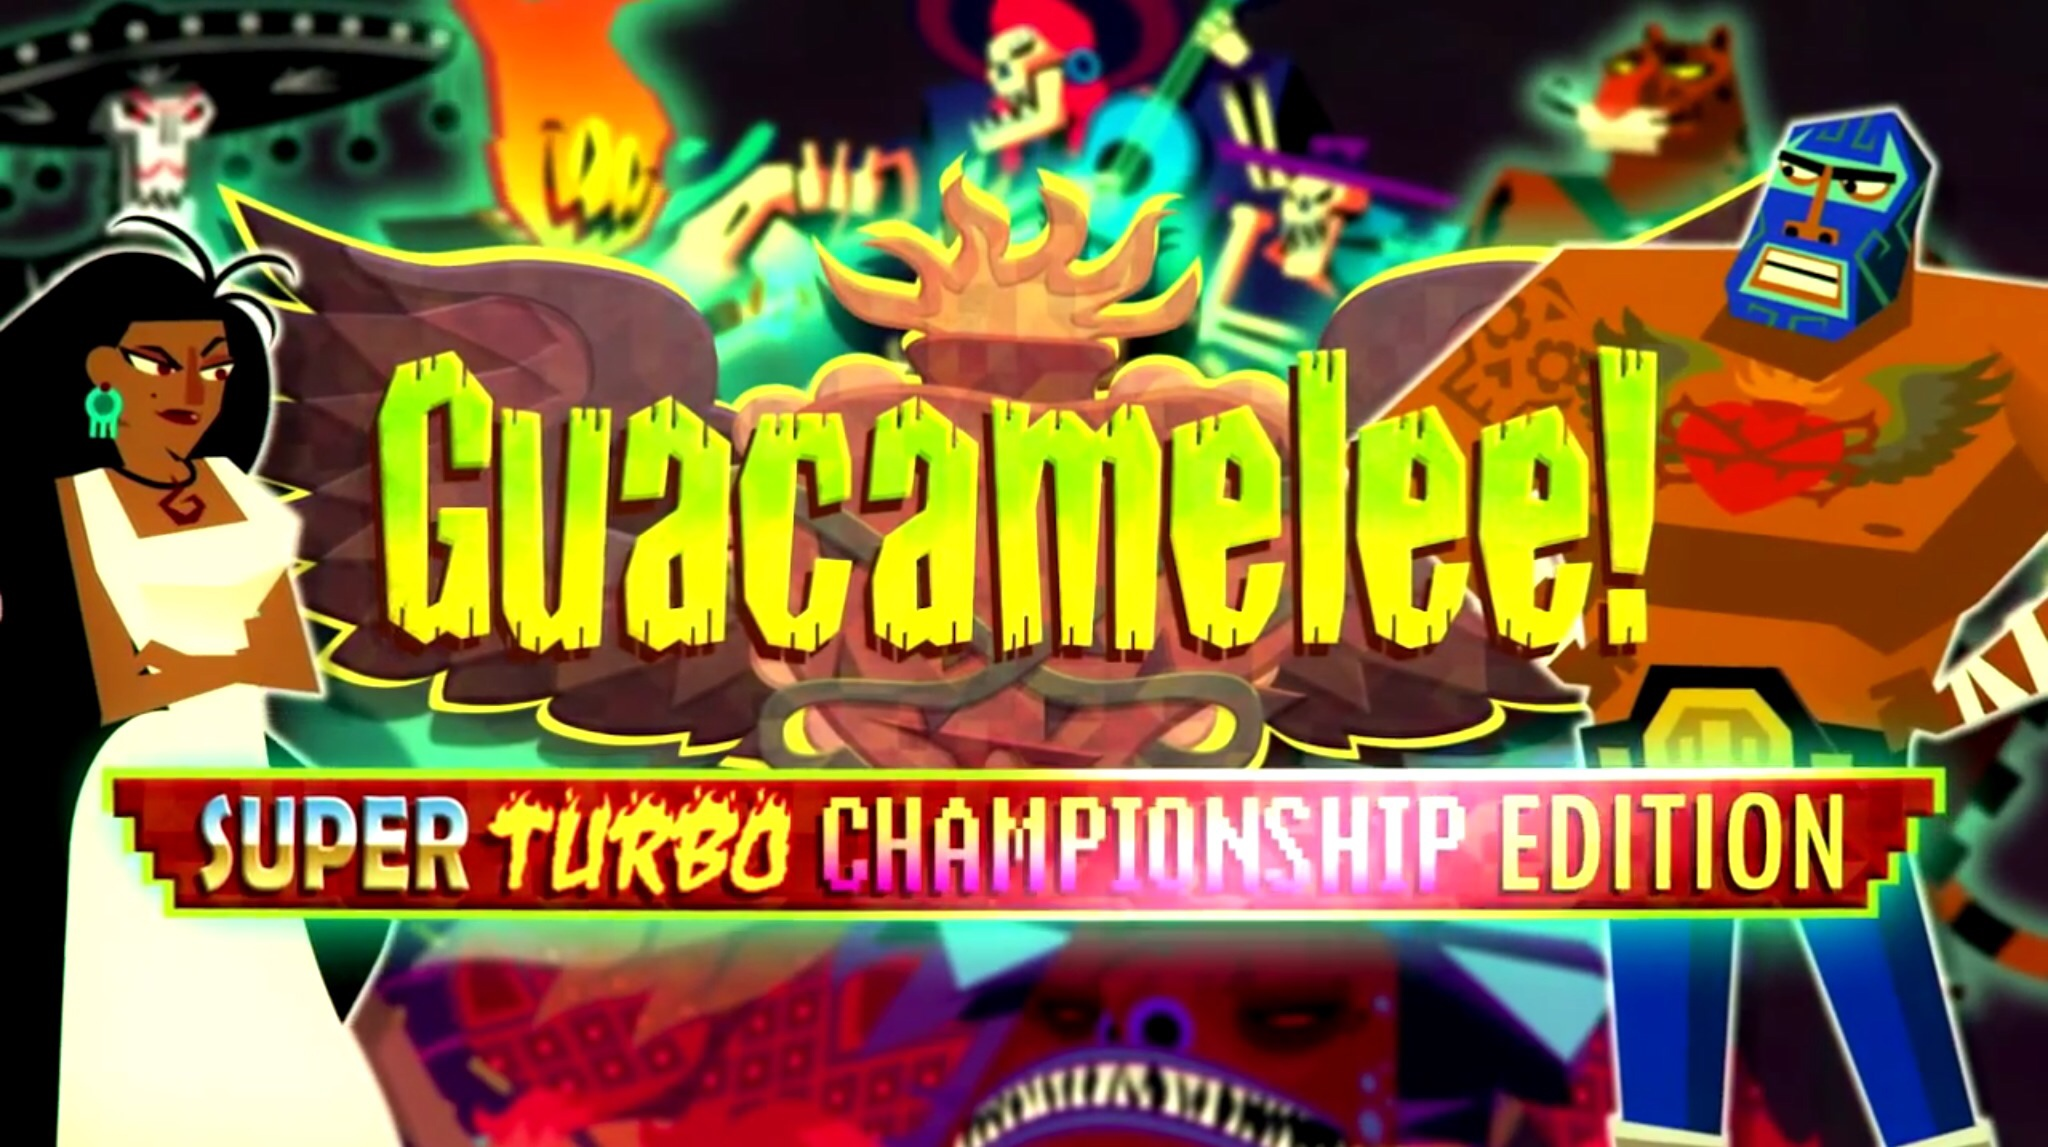 Guacamelee! Super Turbo Championship Edition Test